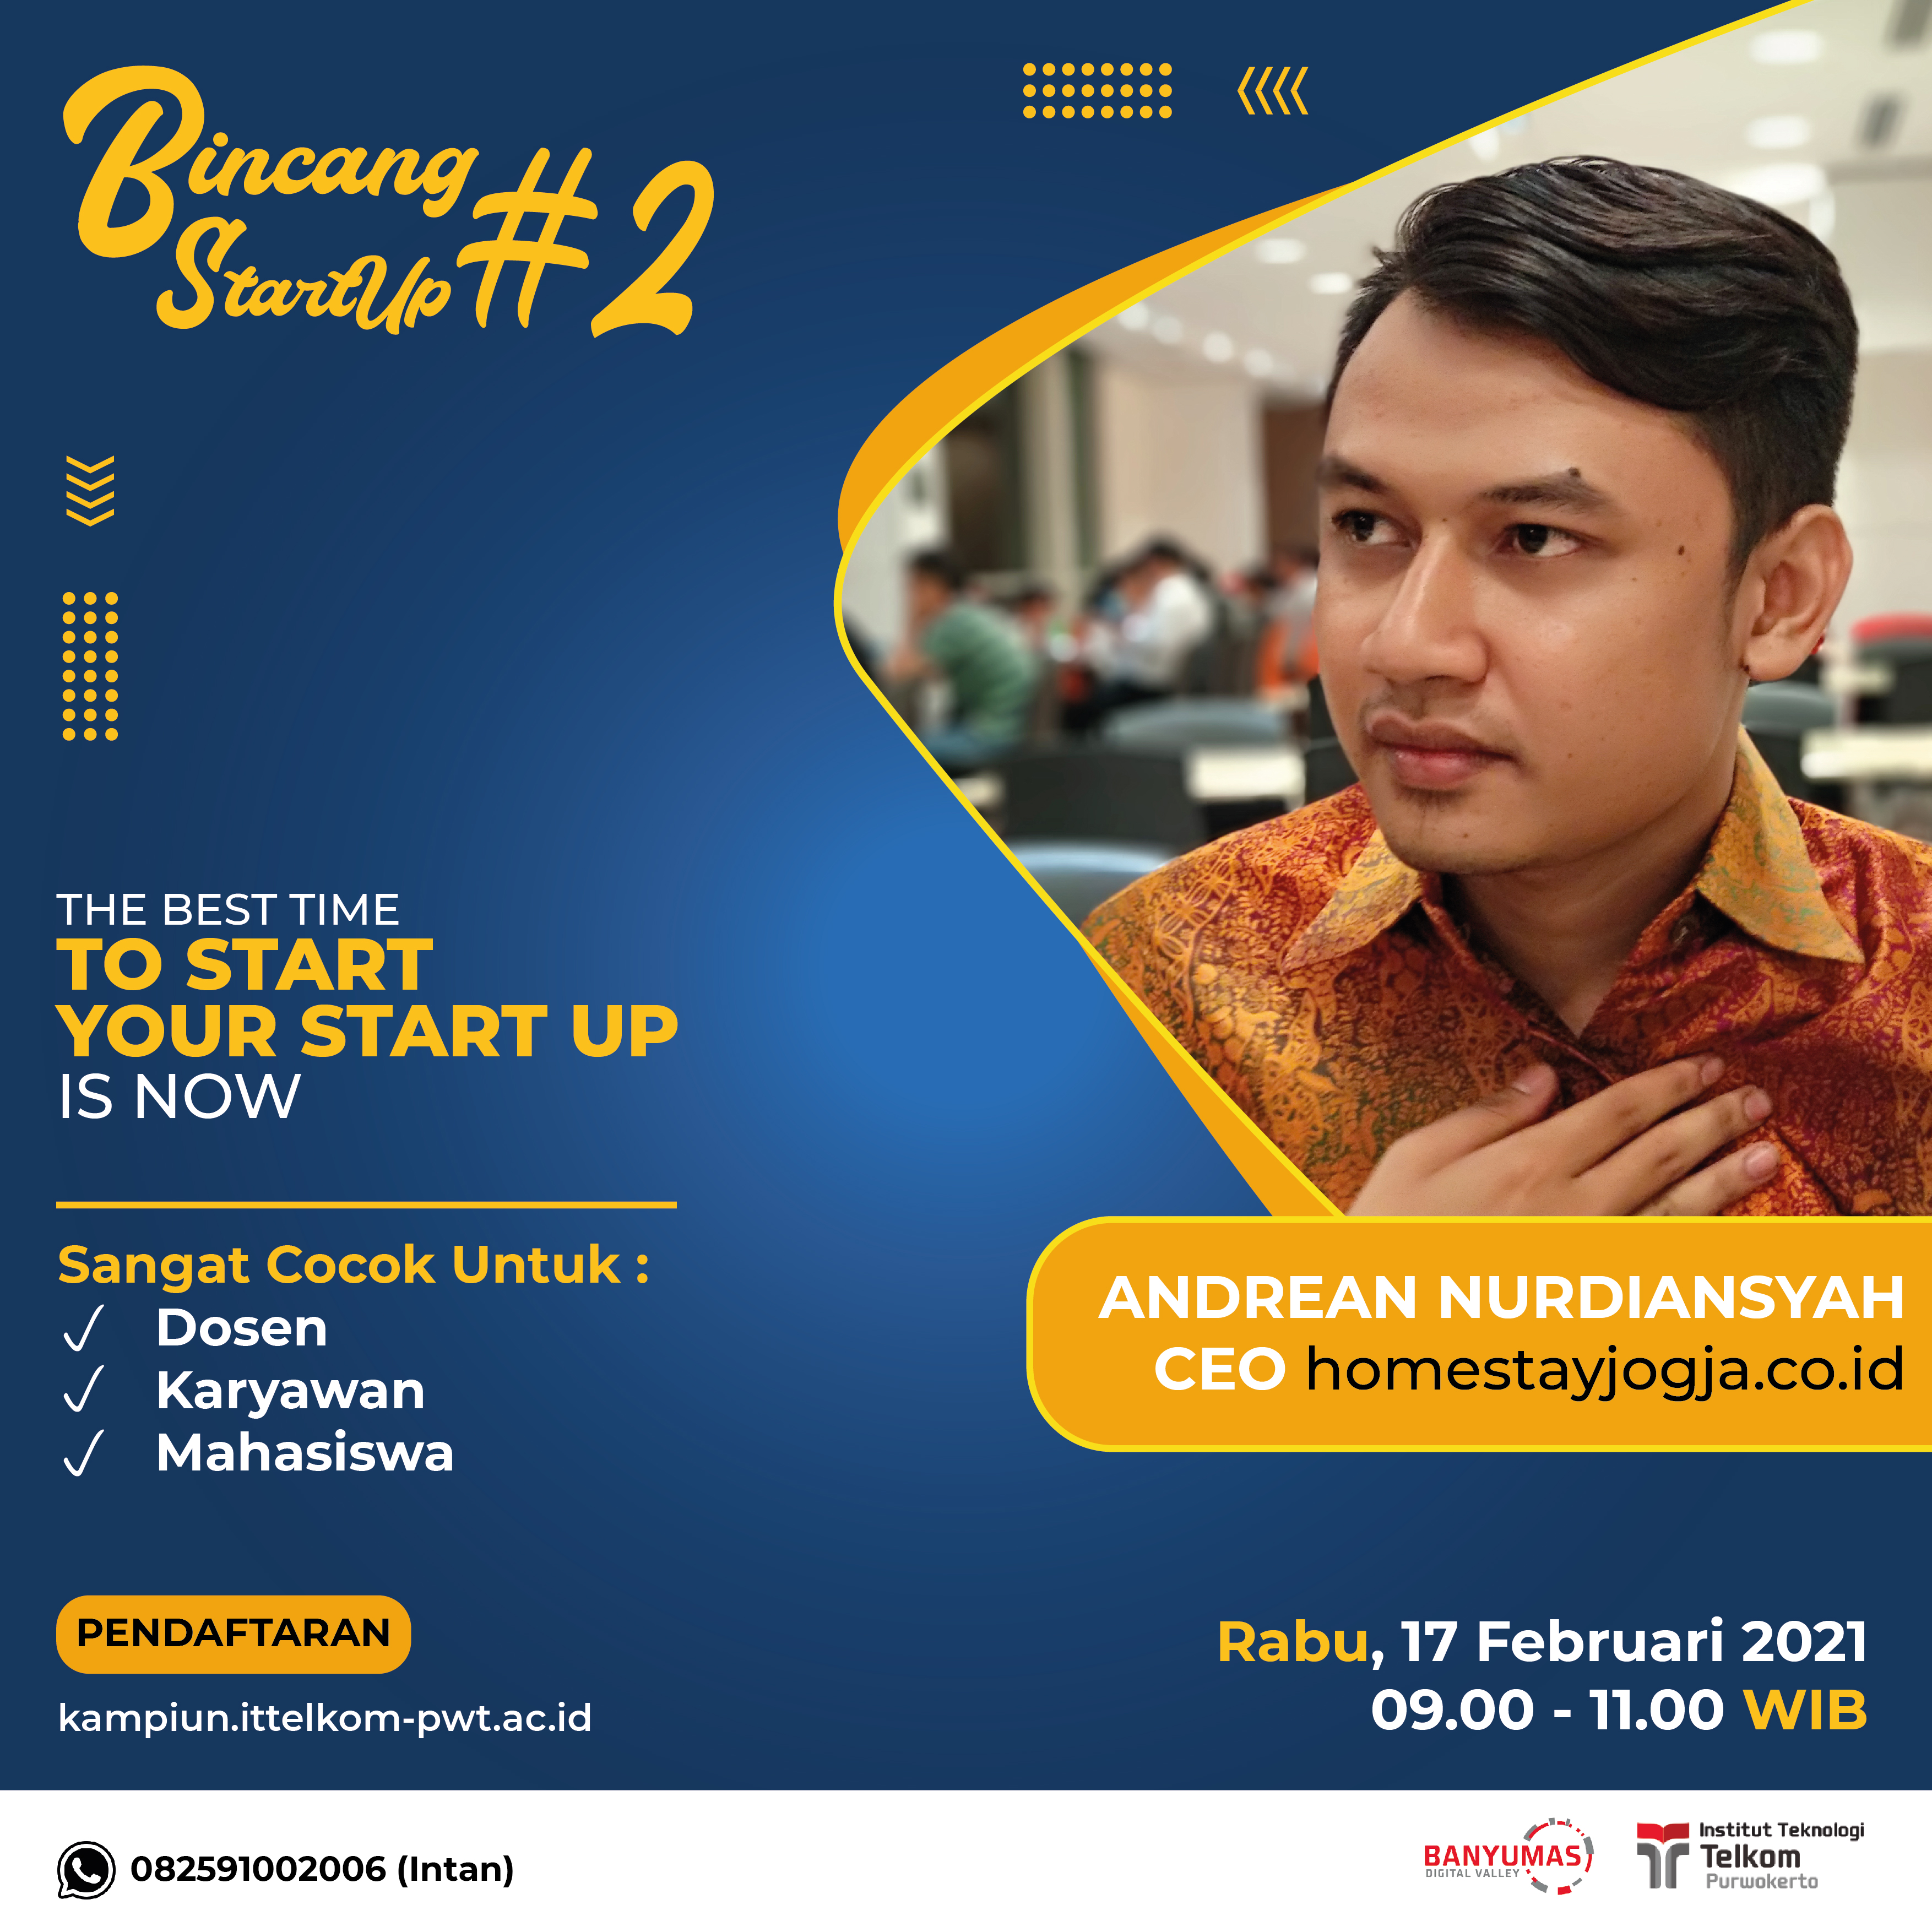 Bincang Start Up #2 : The Best Time to Start Your Start Up Is Now